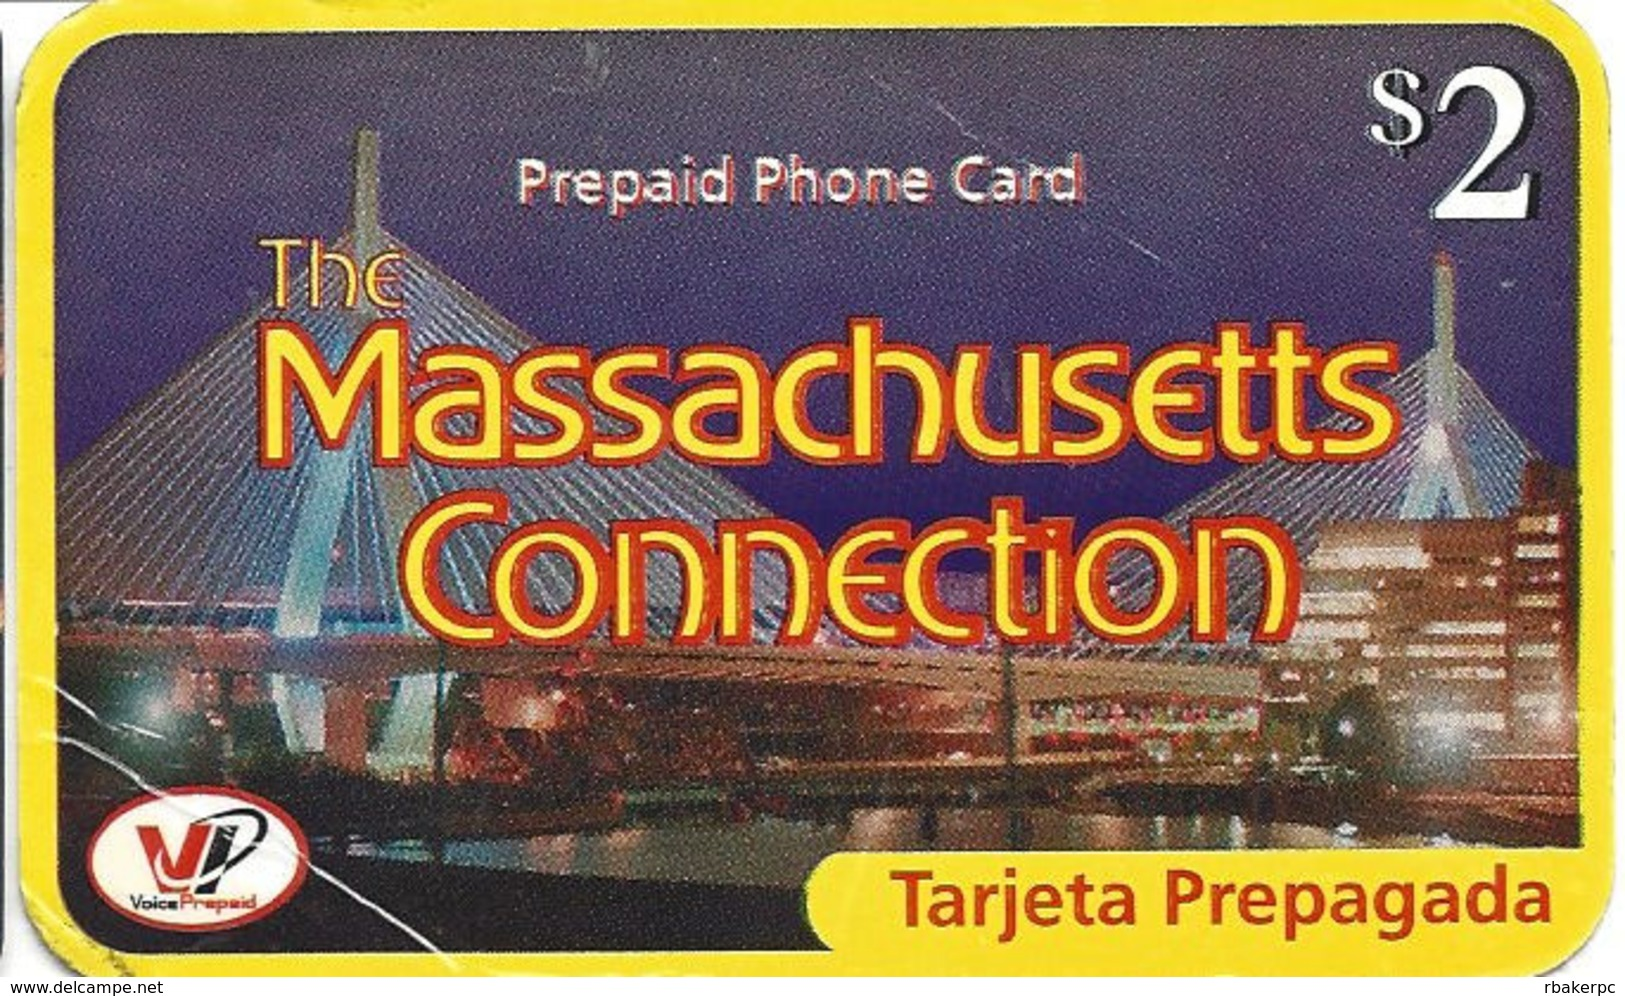 The Massachusetts Connection - Paper Prepaid Phone Card - United States